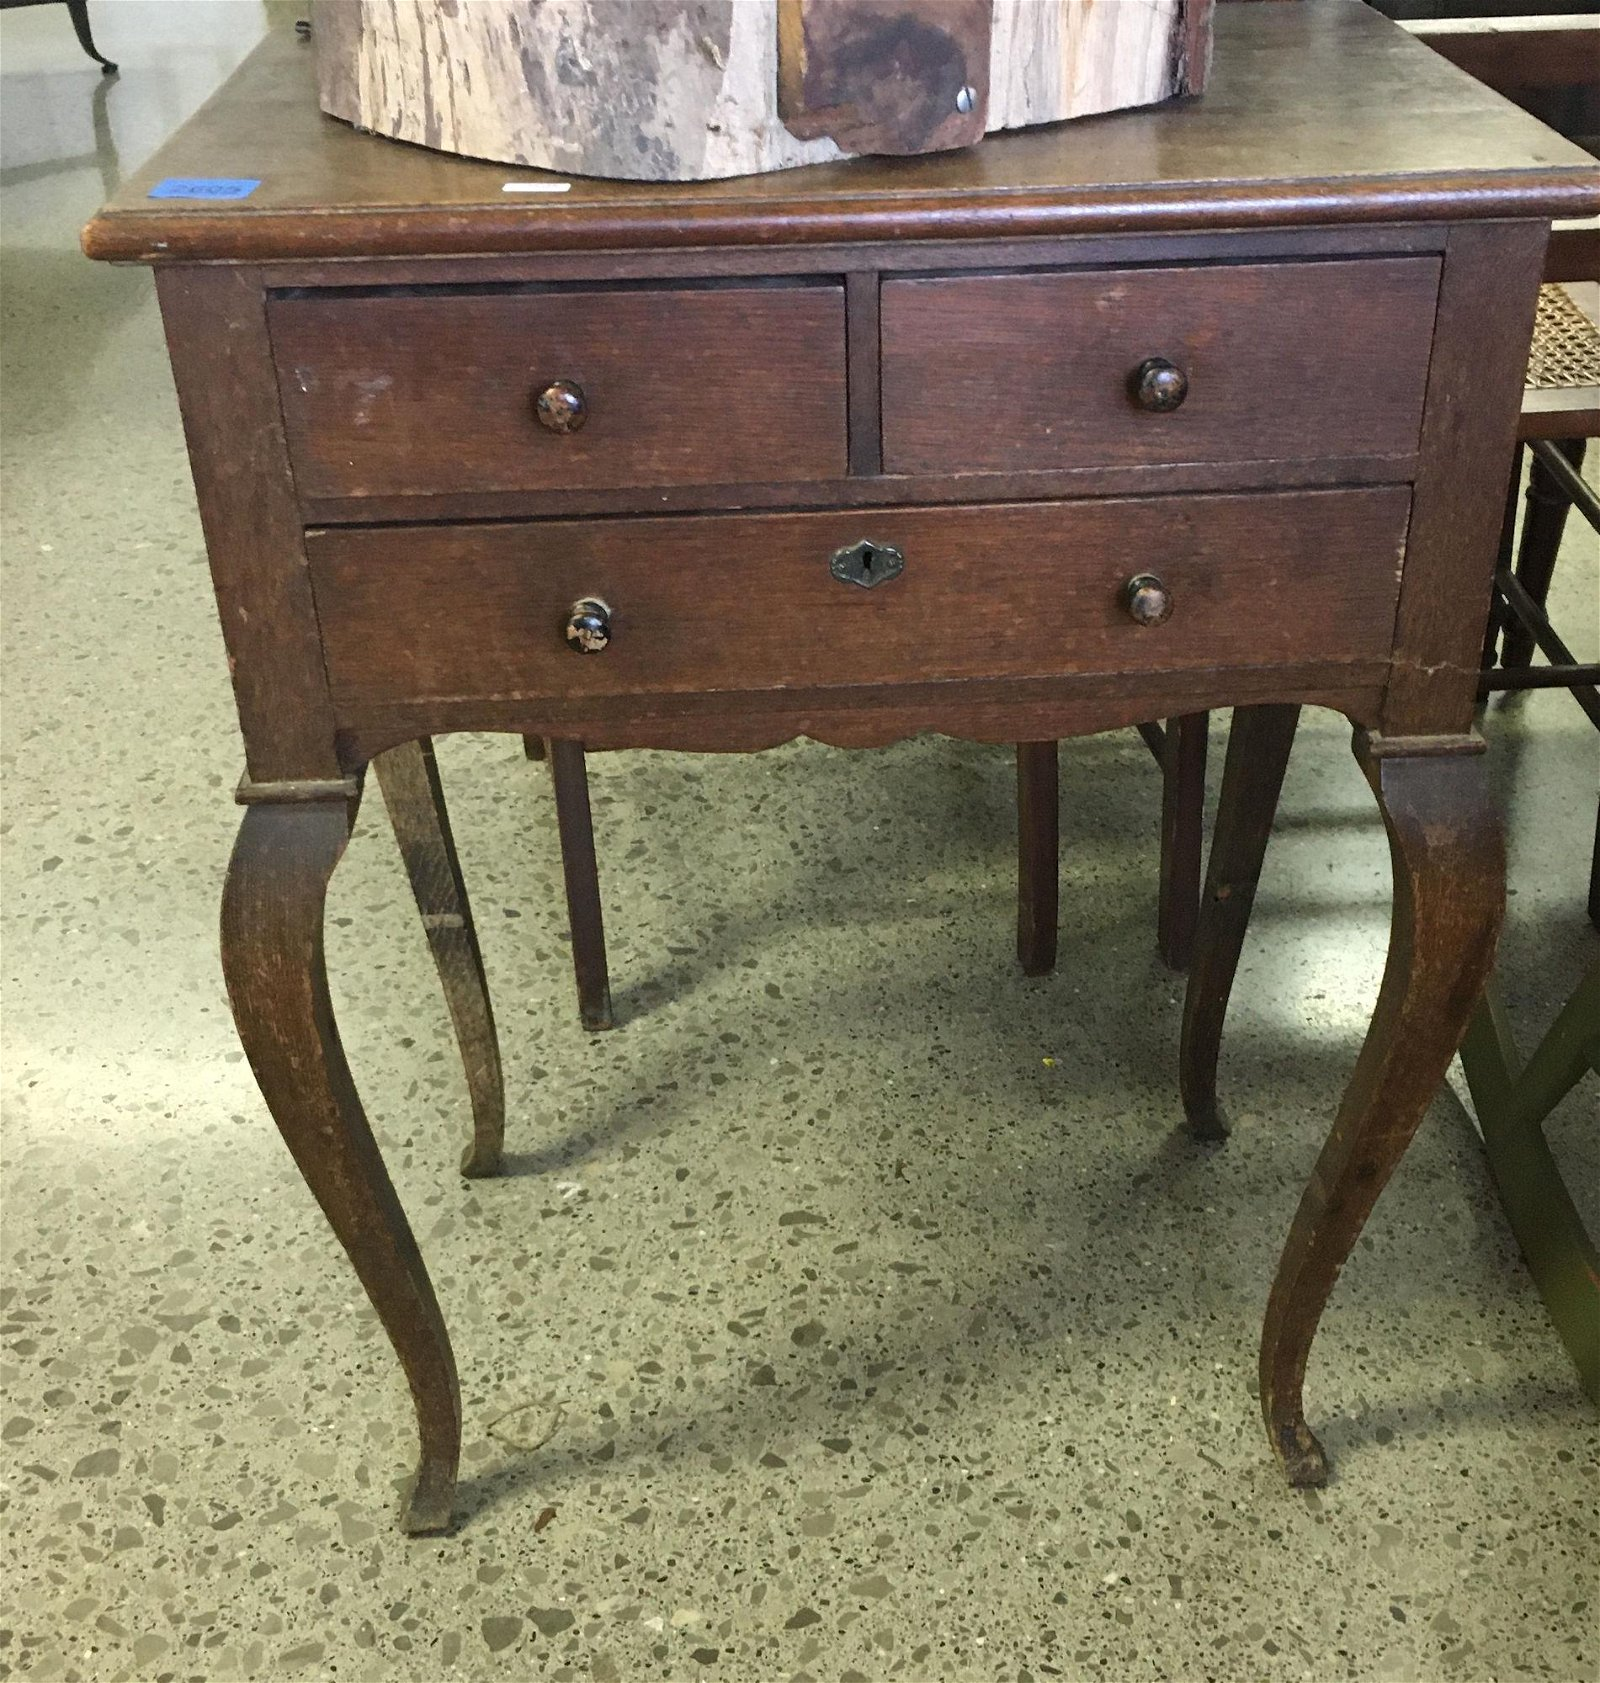 EARLY 20TH CENTURY OAK THREE DRAWER STAND WITH CABRIOLE